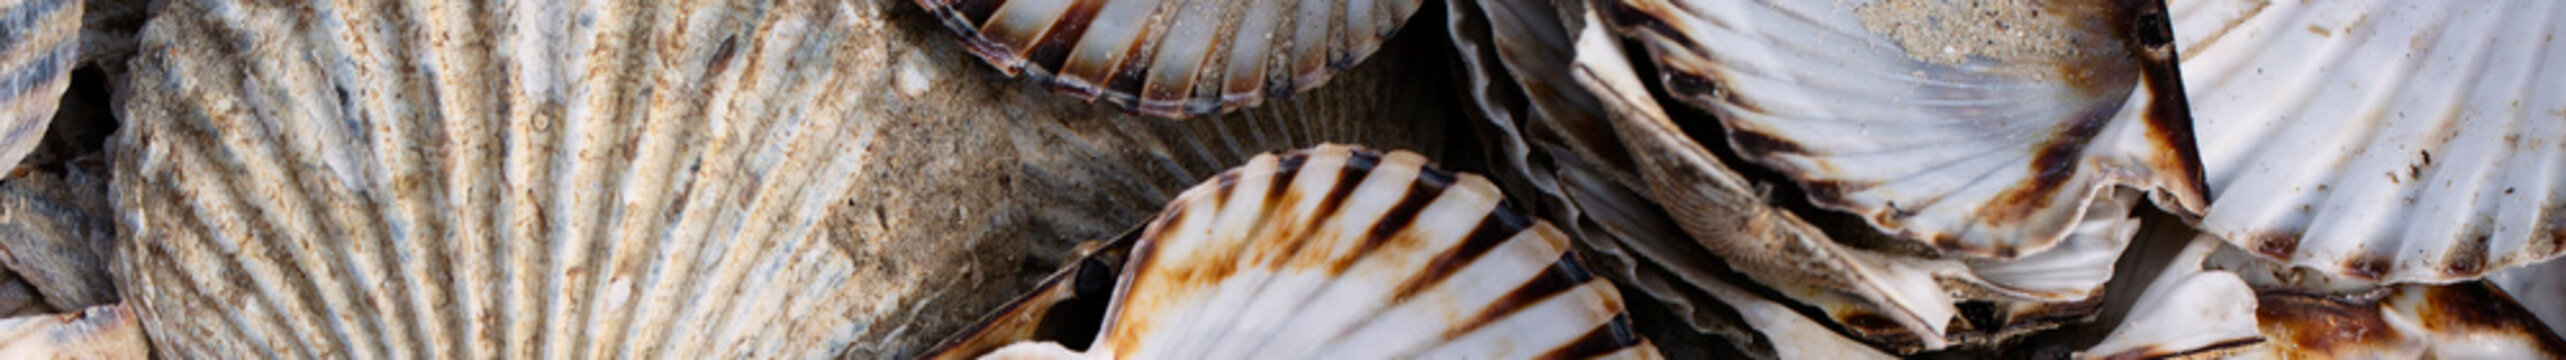 Banner size - Colorful textured scallop shells